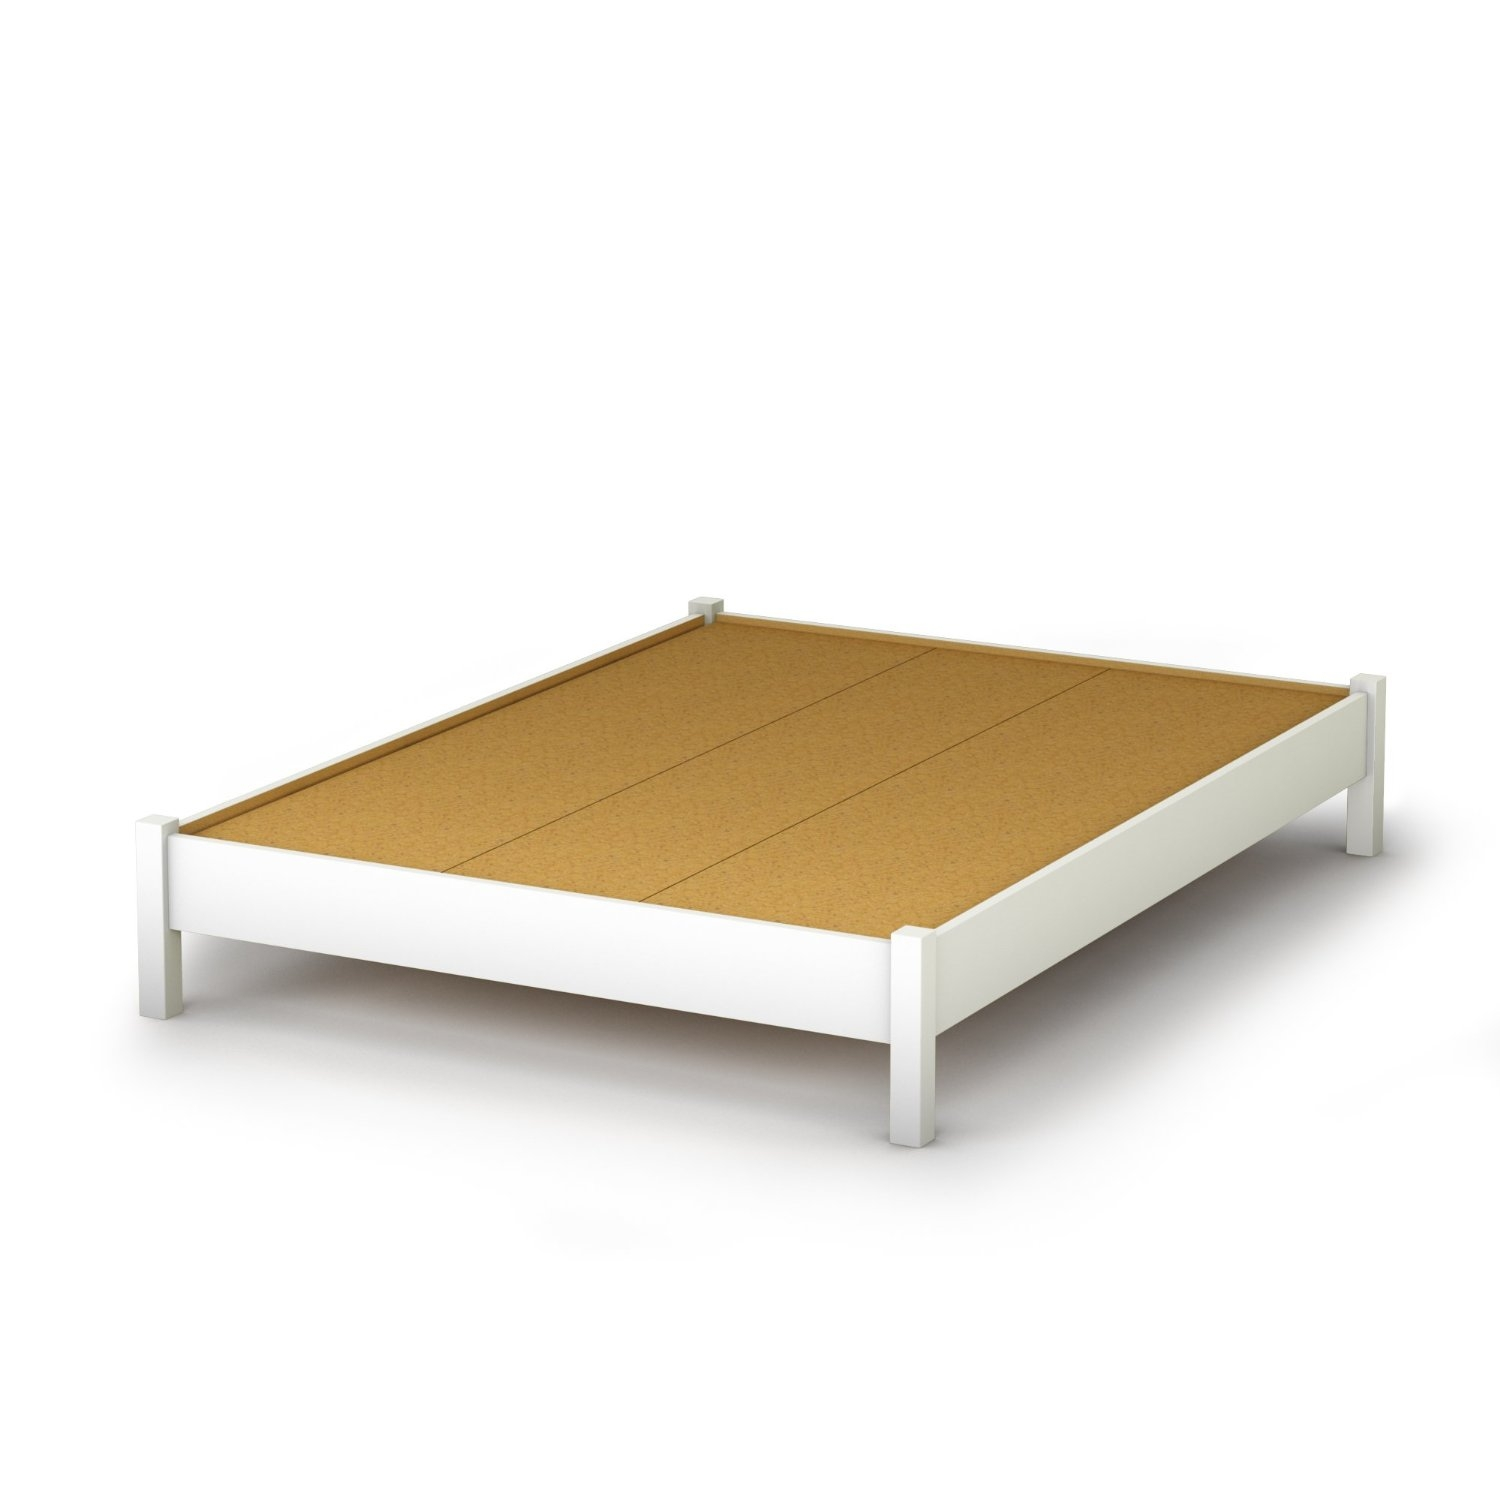 Full Size Platform Bed Full Size Simple Platform Bed In White Finish - Modern